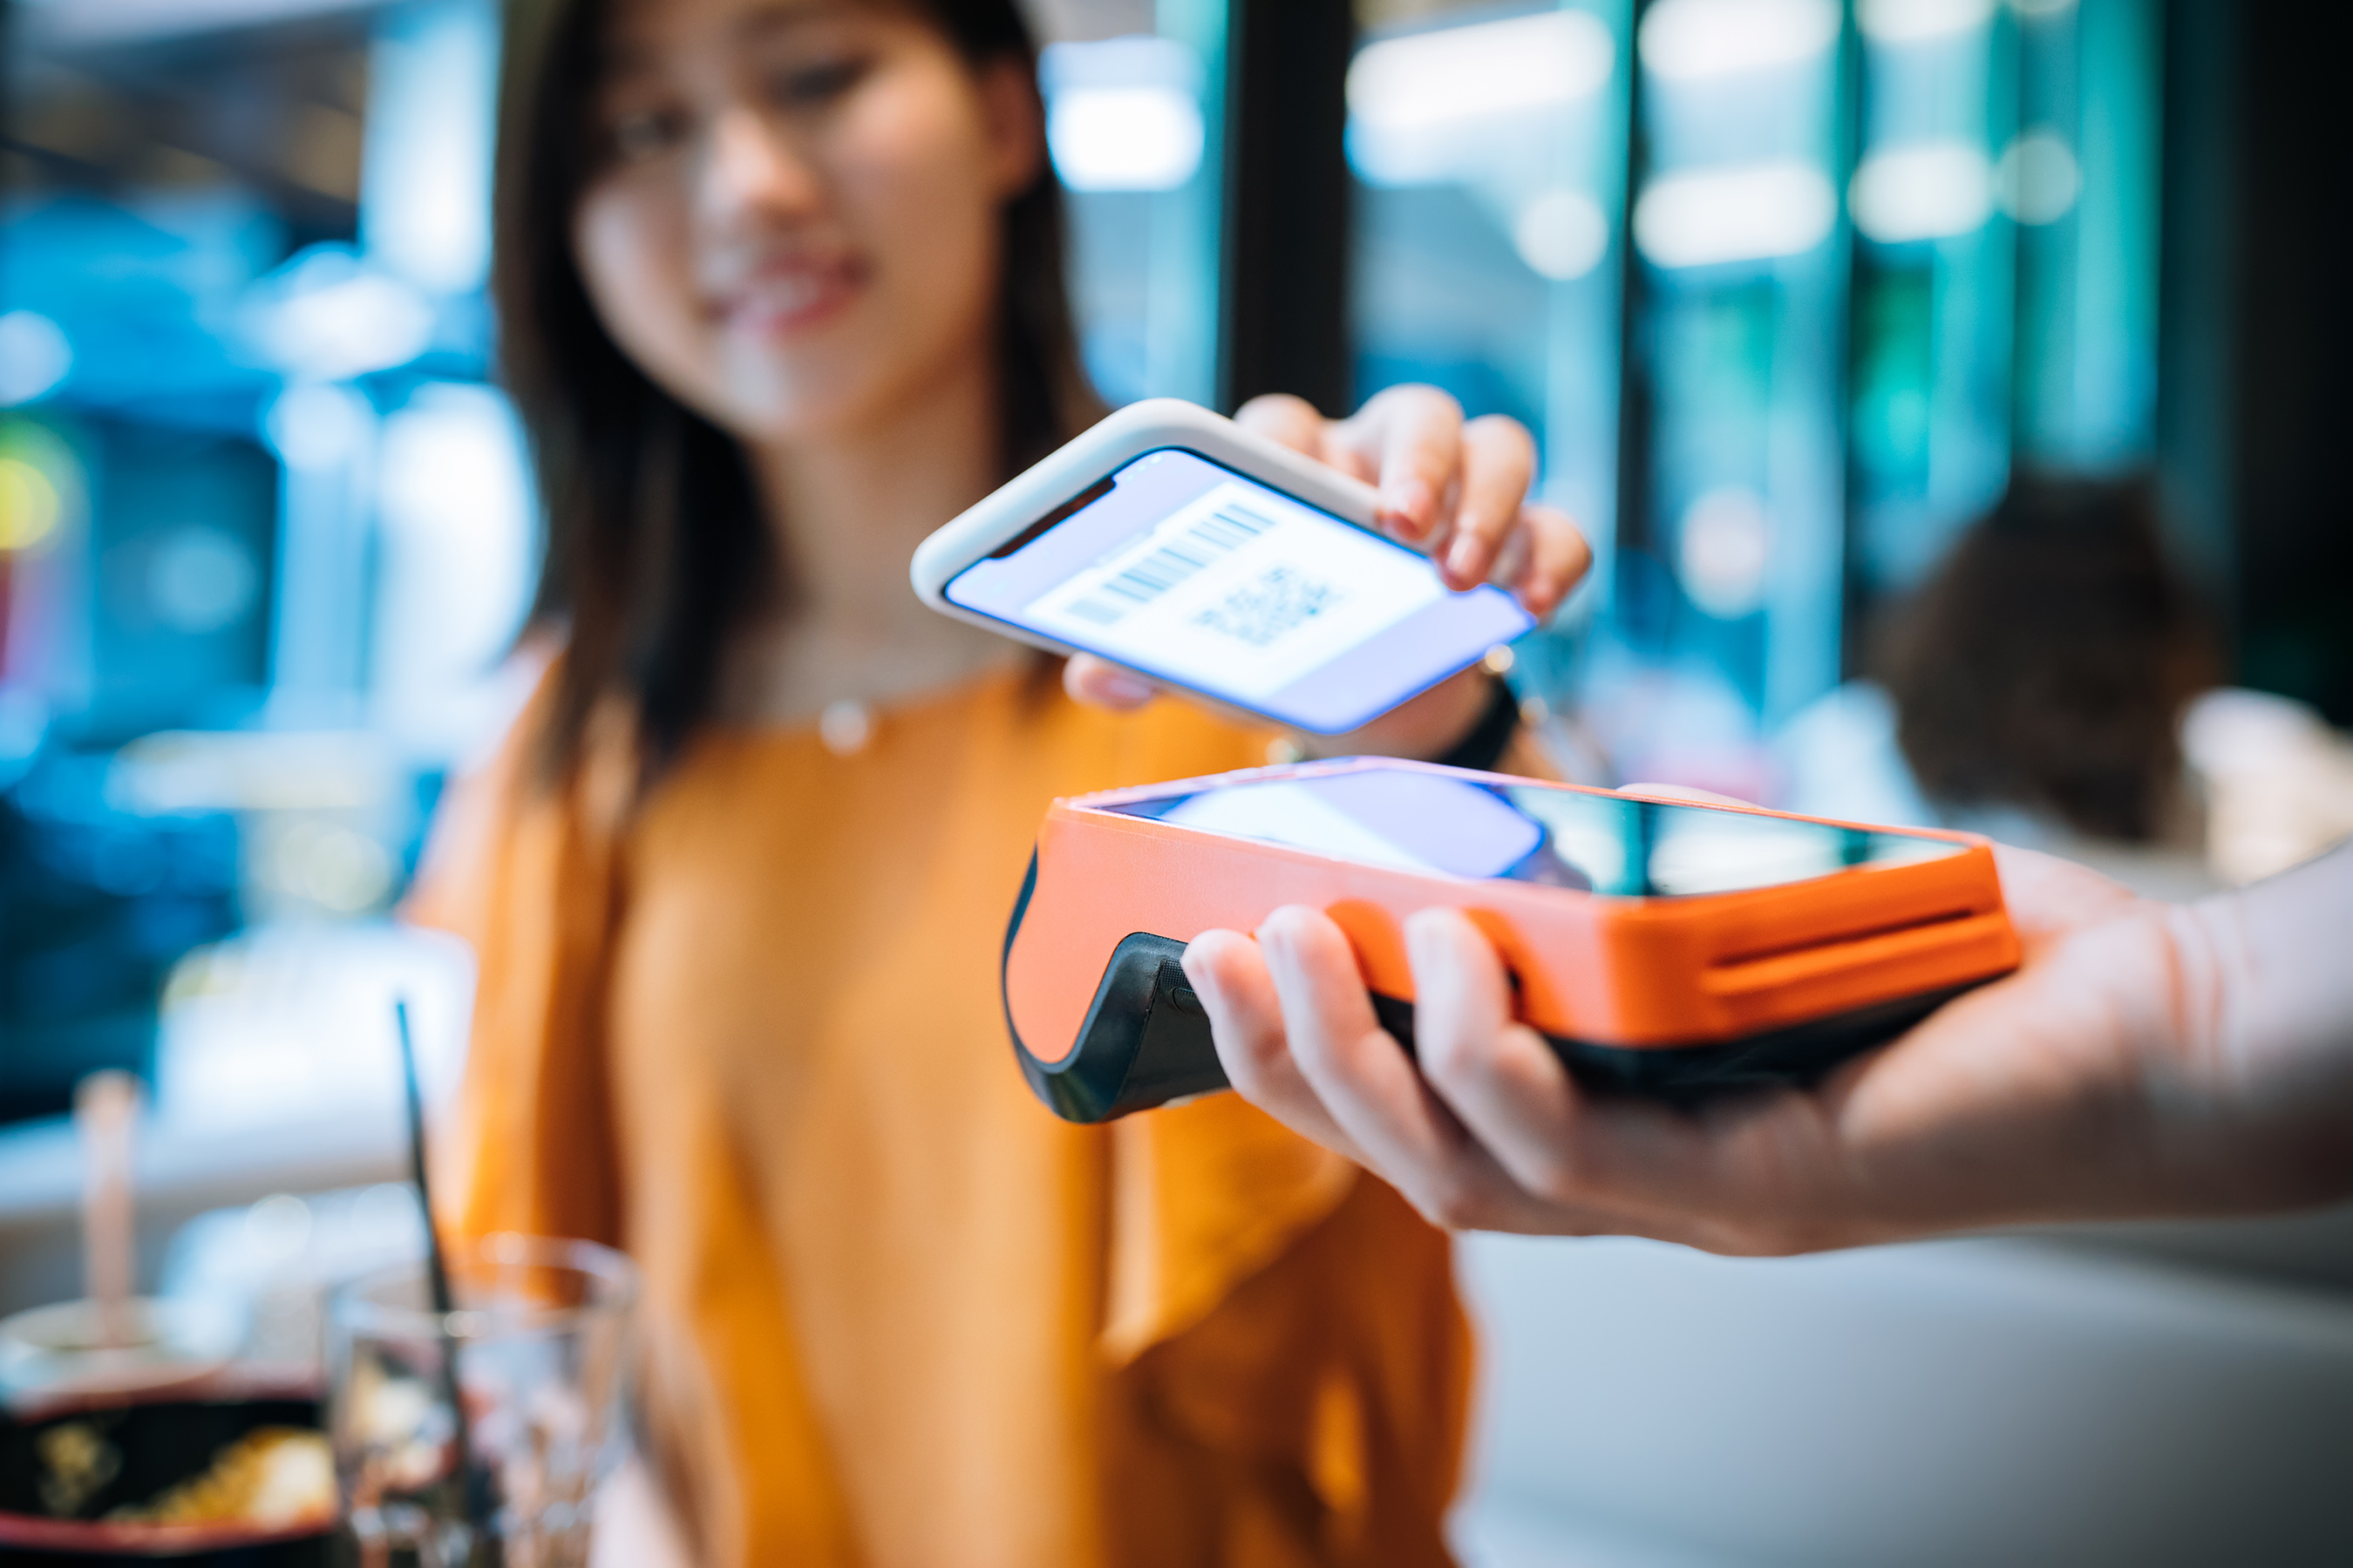 Technology innovation driving new in-store and online retail experiences